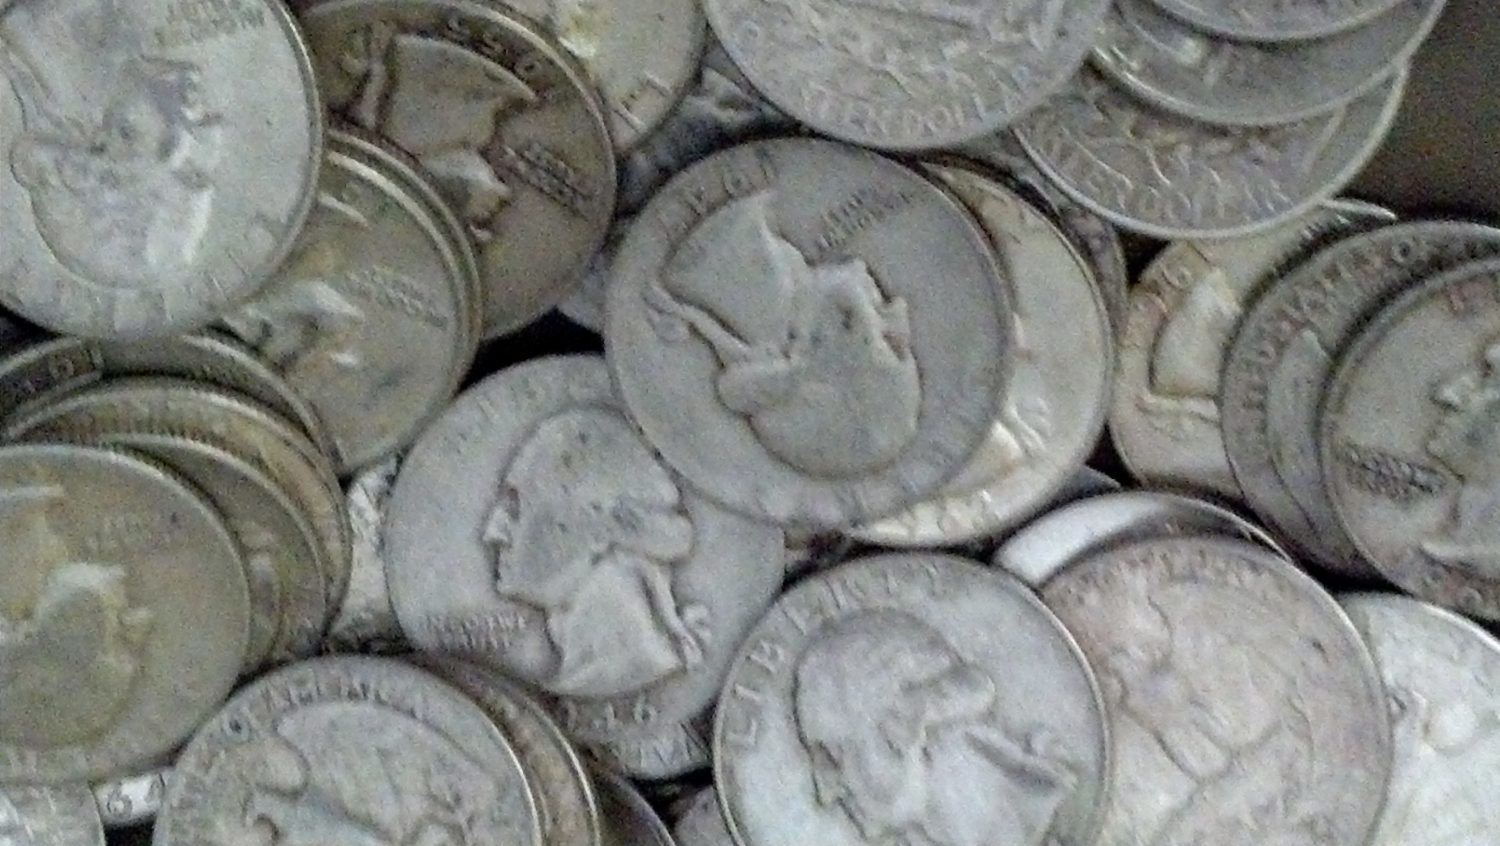 INSTANT SURVIVAL TIP: Go retro with your quarters and dimes!